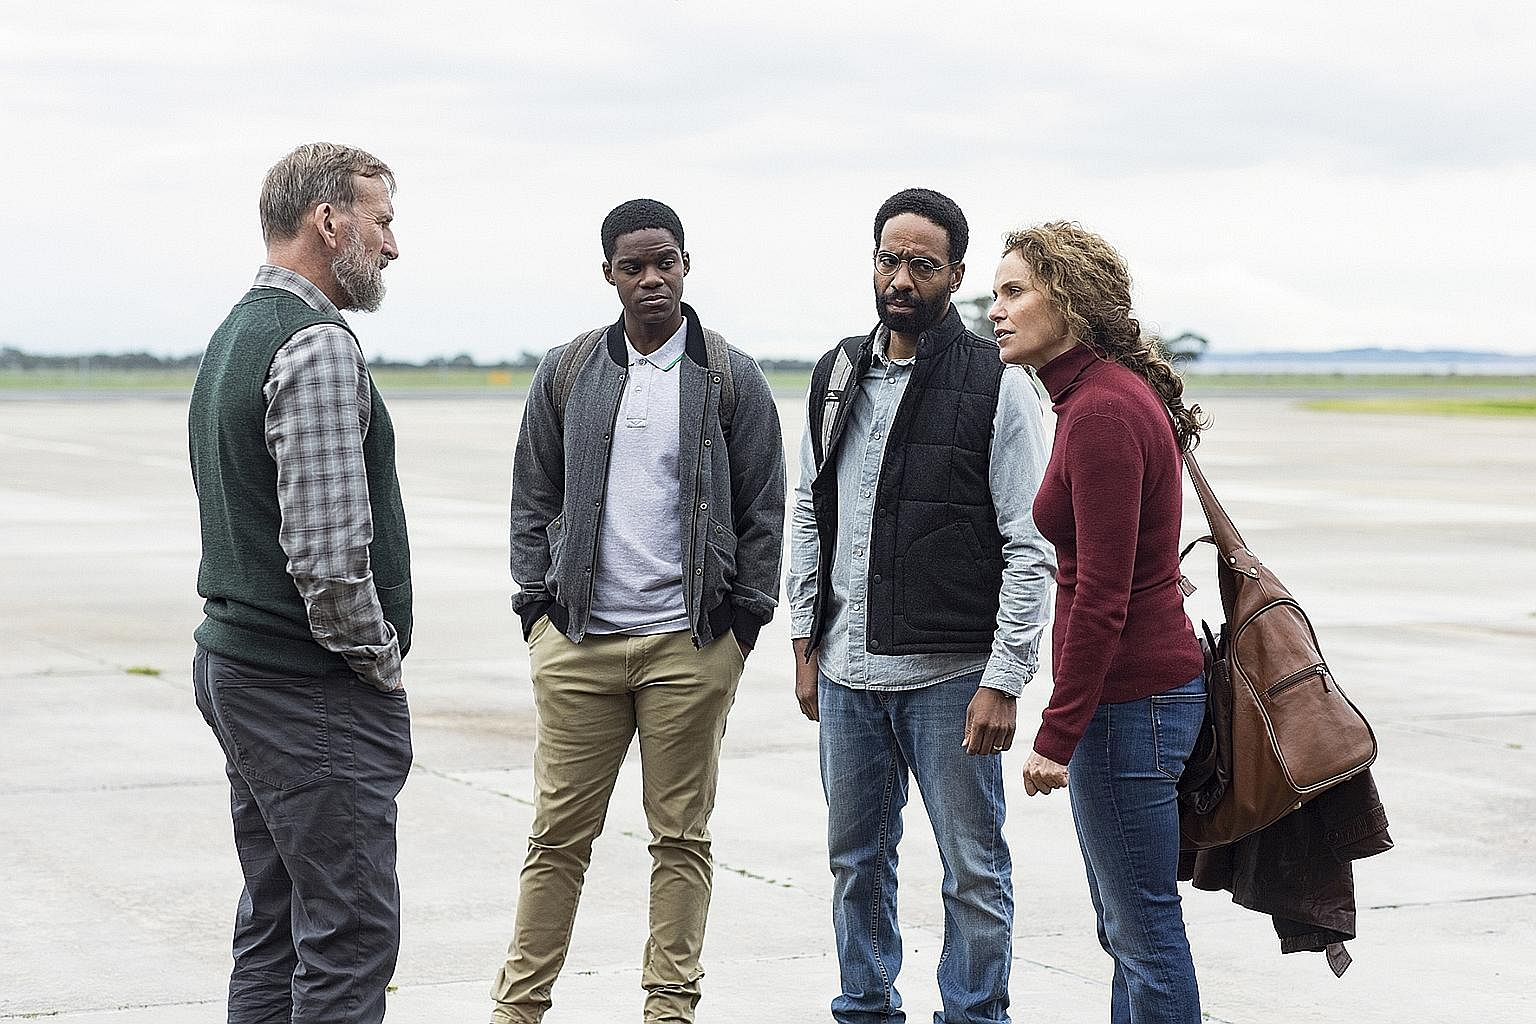 Christopher Eccleston, Jovan Adepo, Kevin Carroll and Amy Brenneman star in The Leftovers.